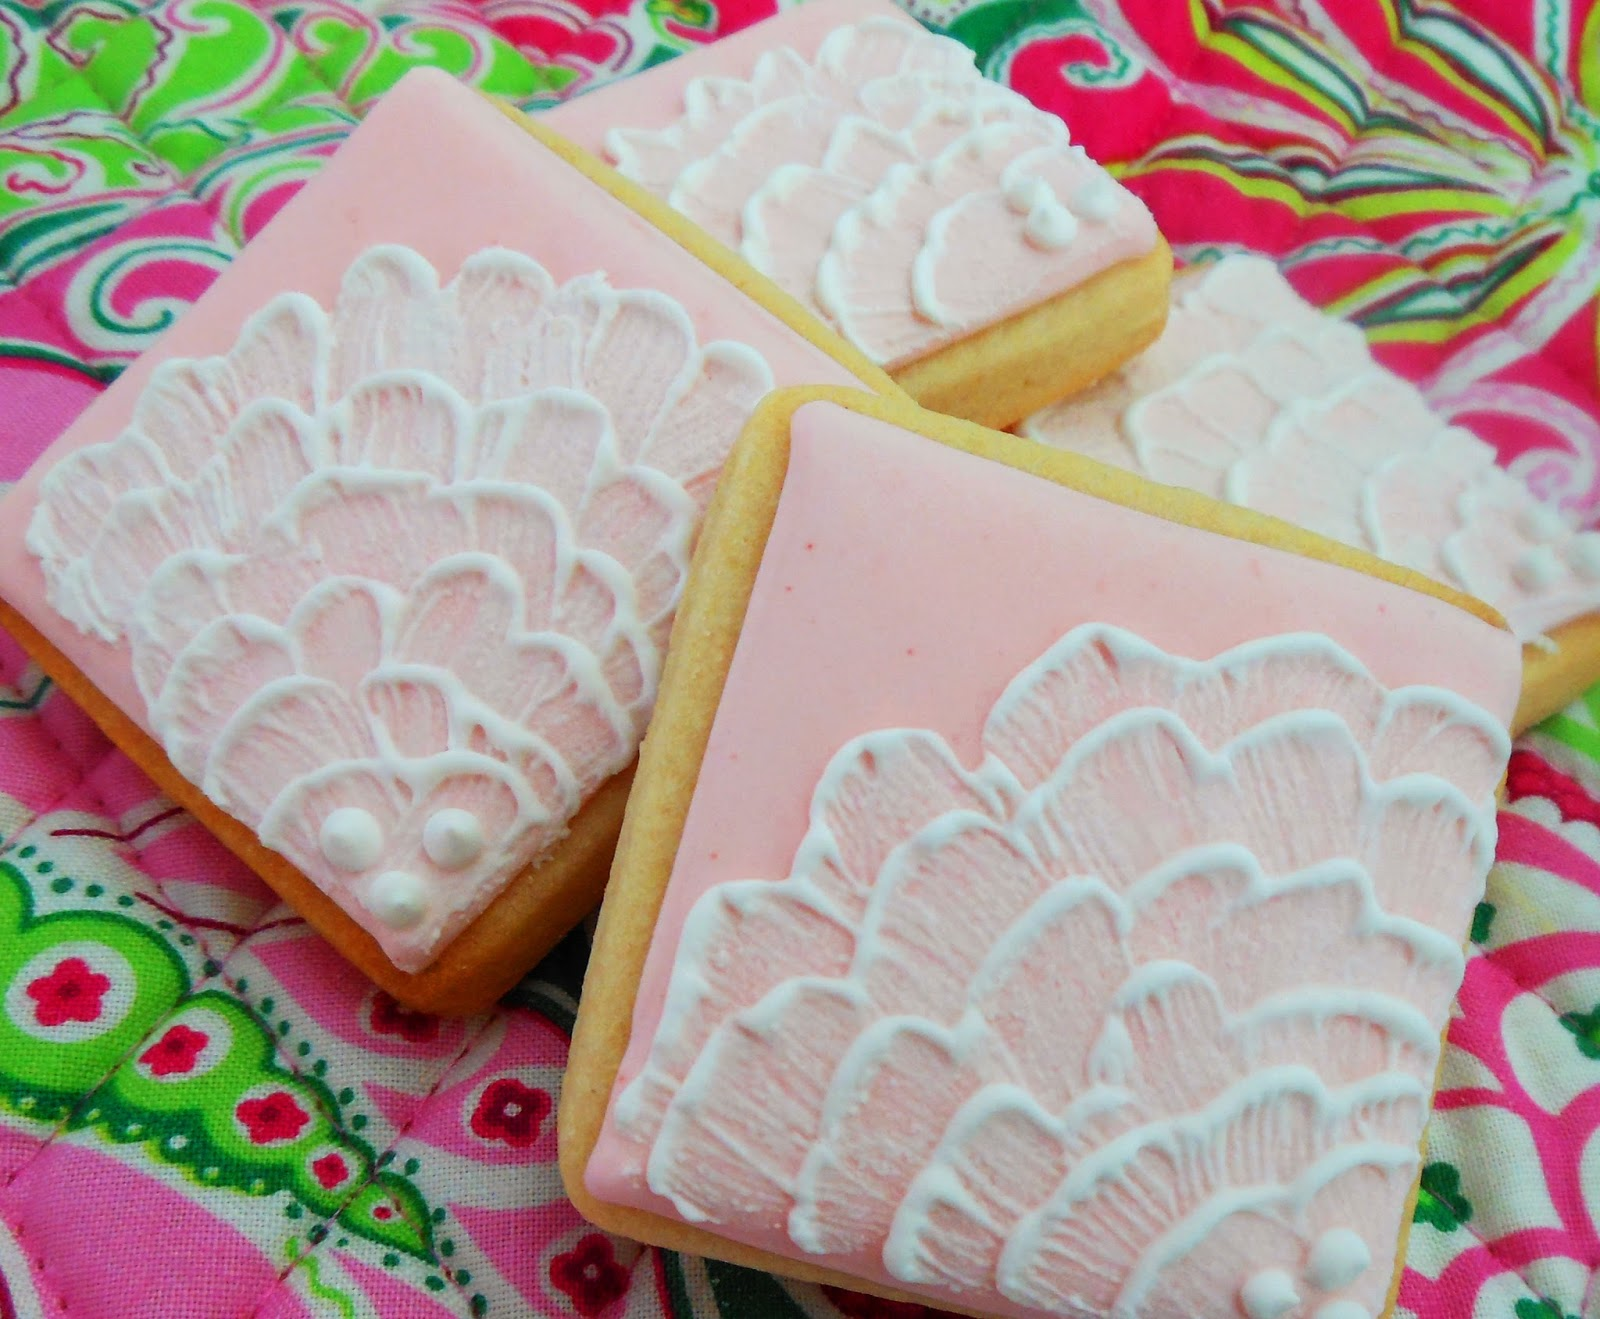 My Cookie Clinic Glittery Square Cookies Luster Dust